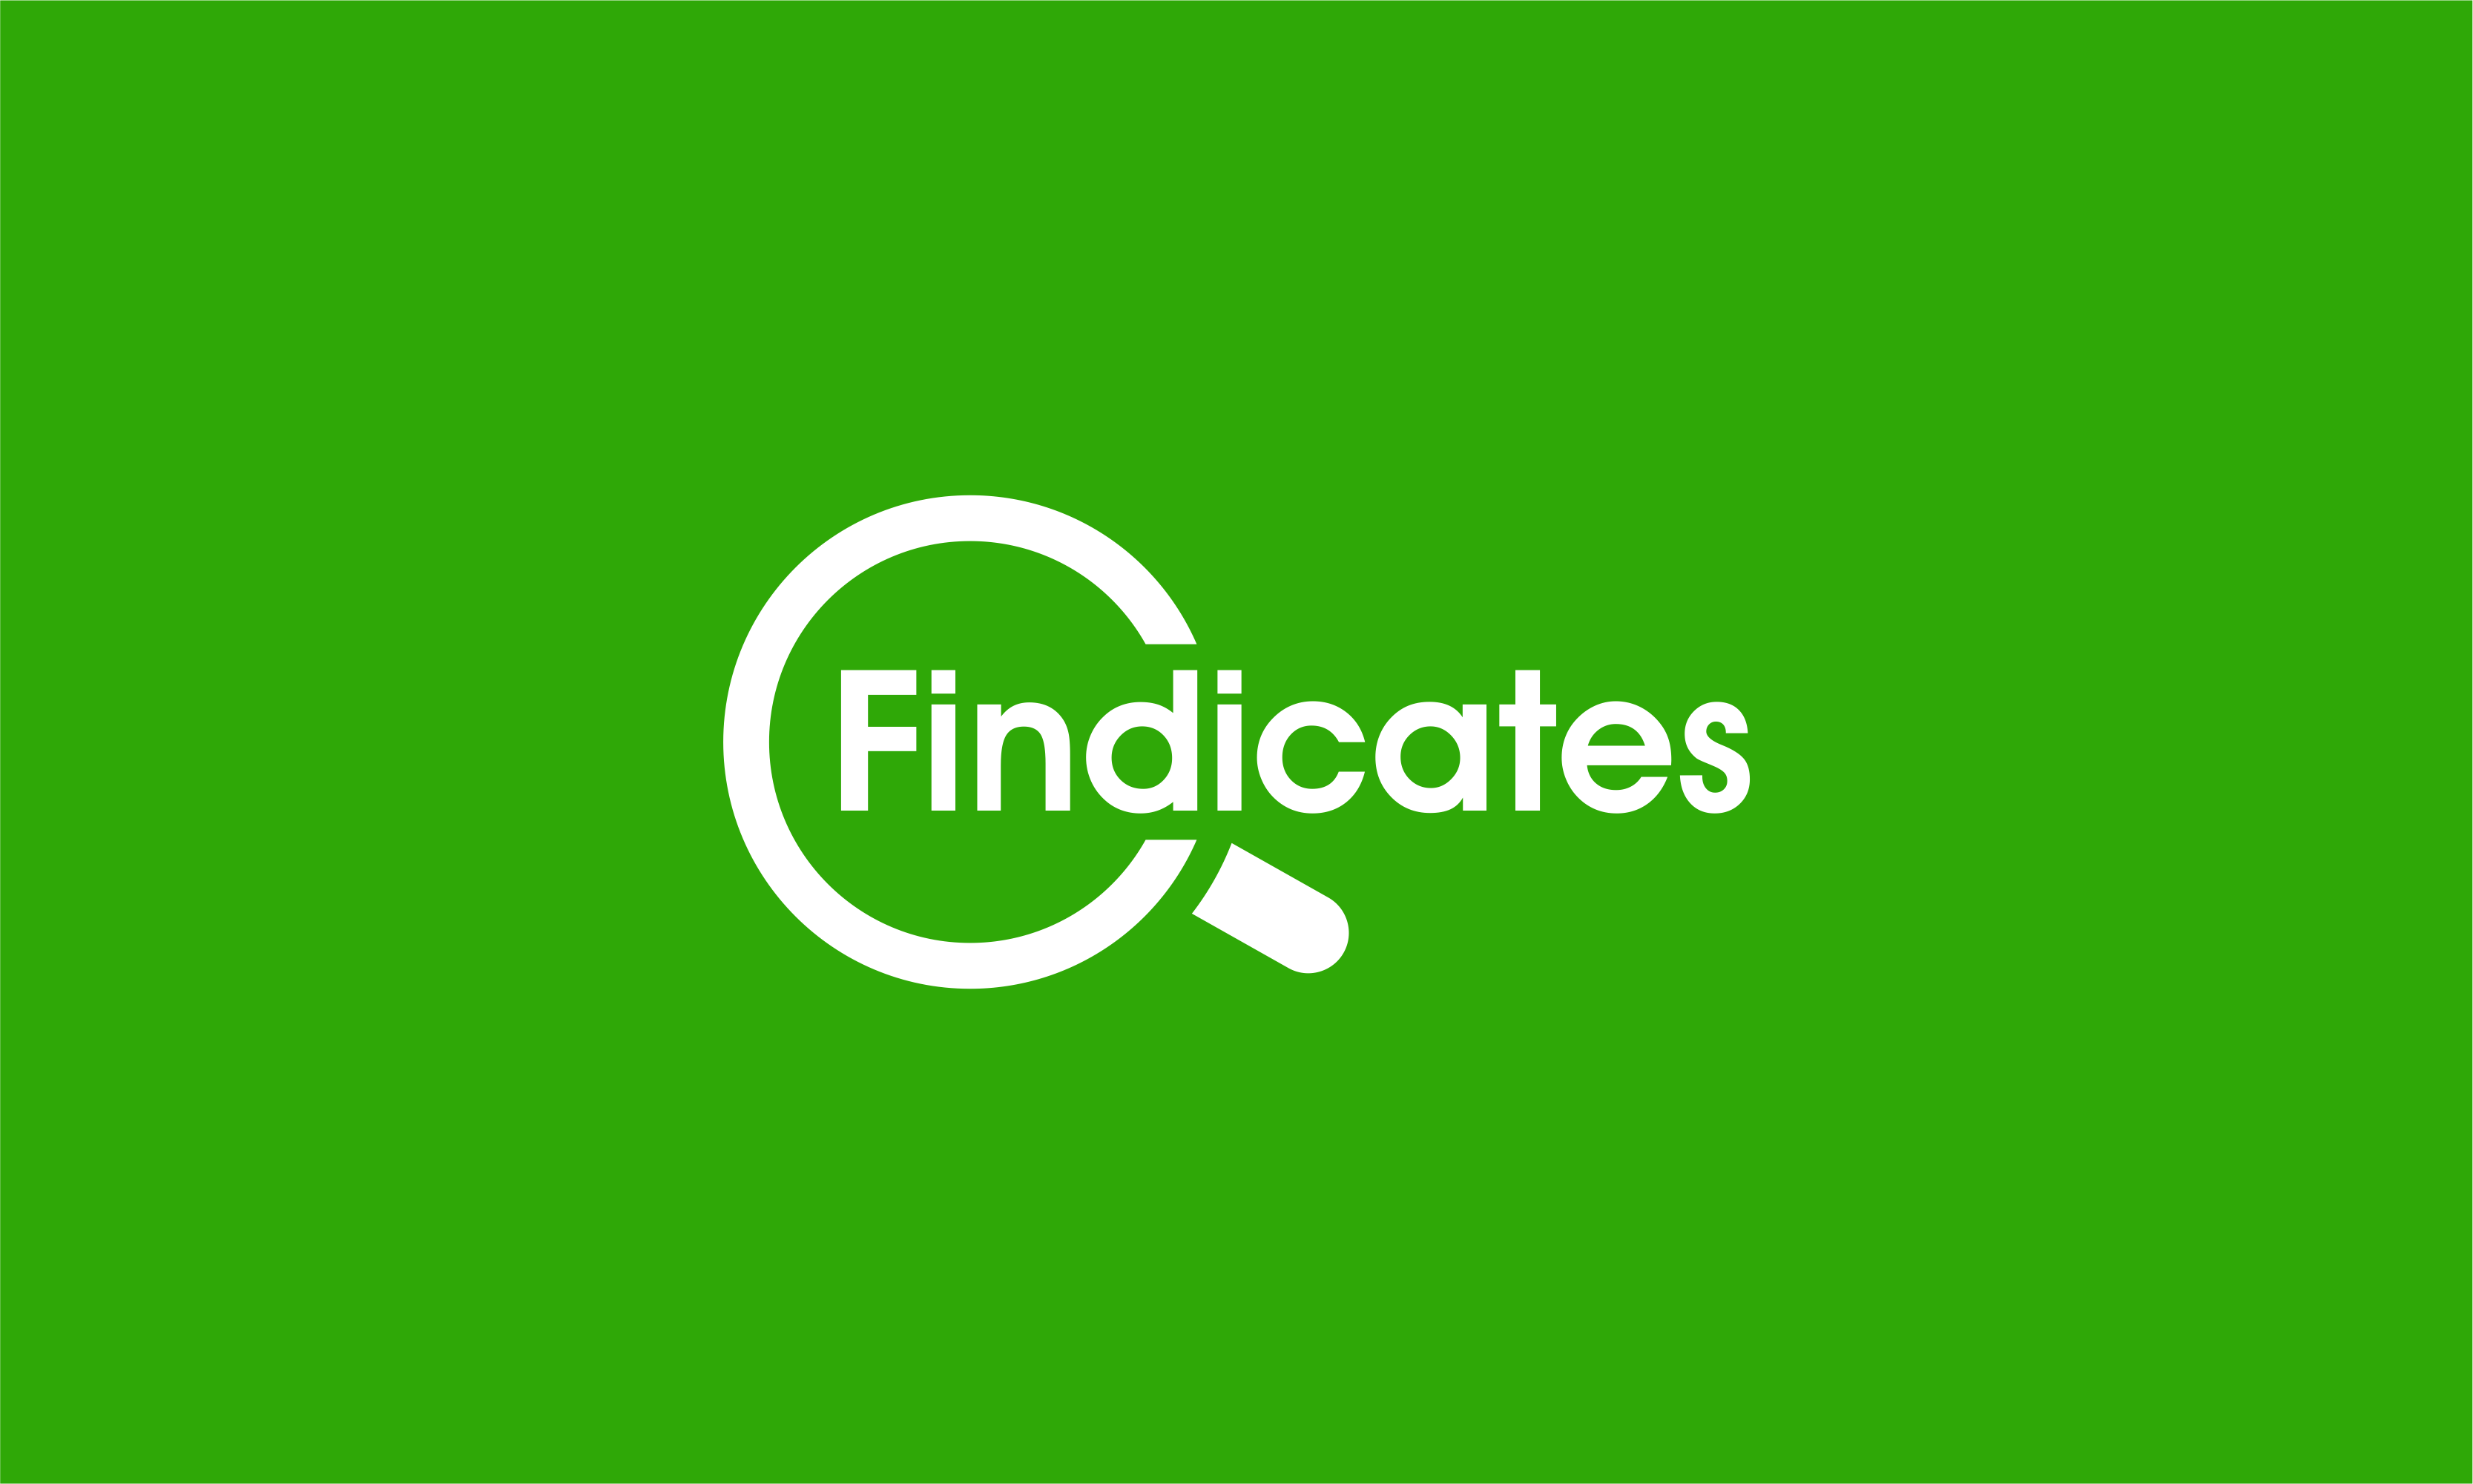 Findicates